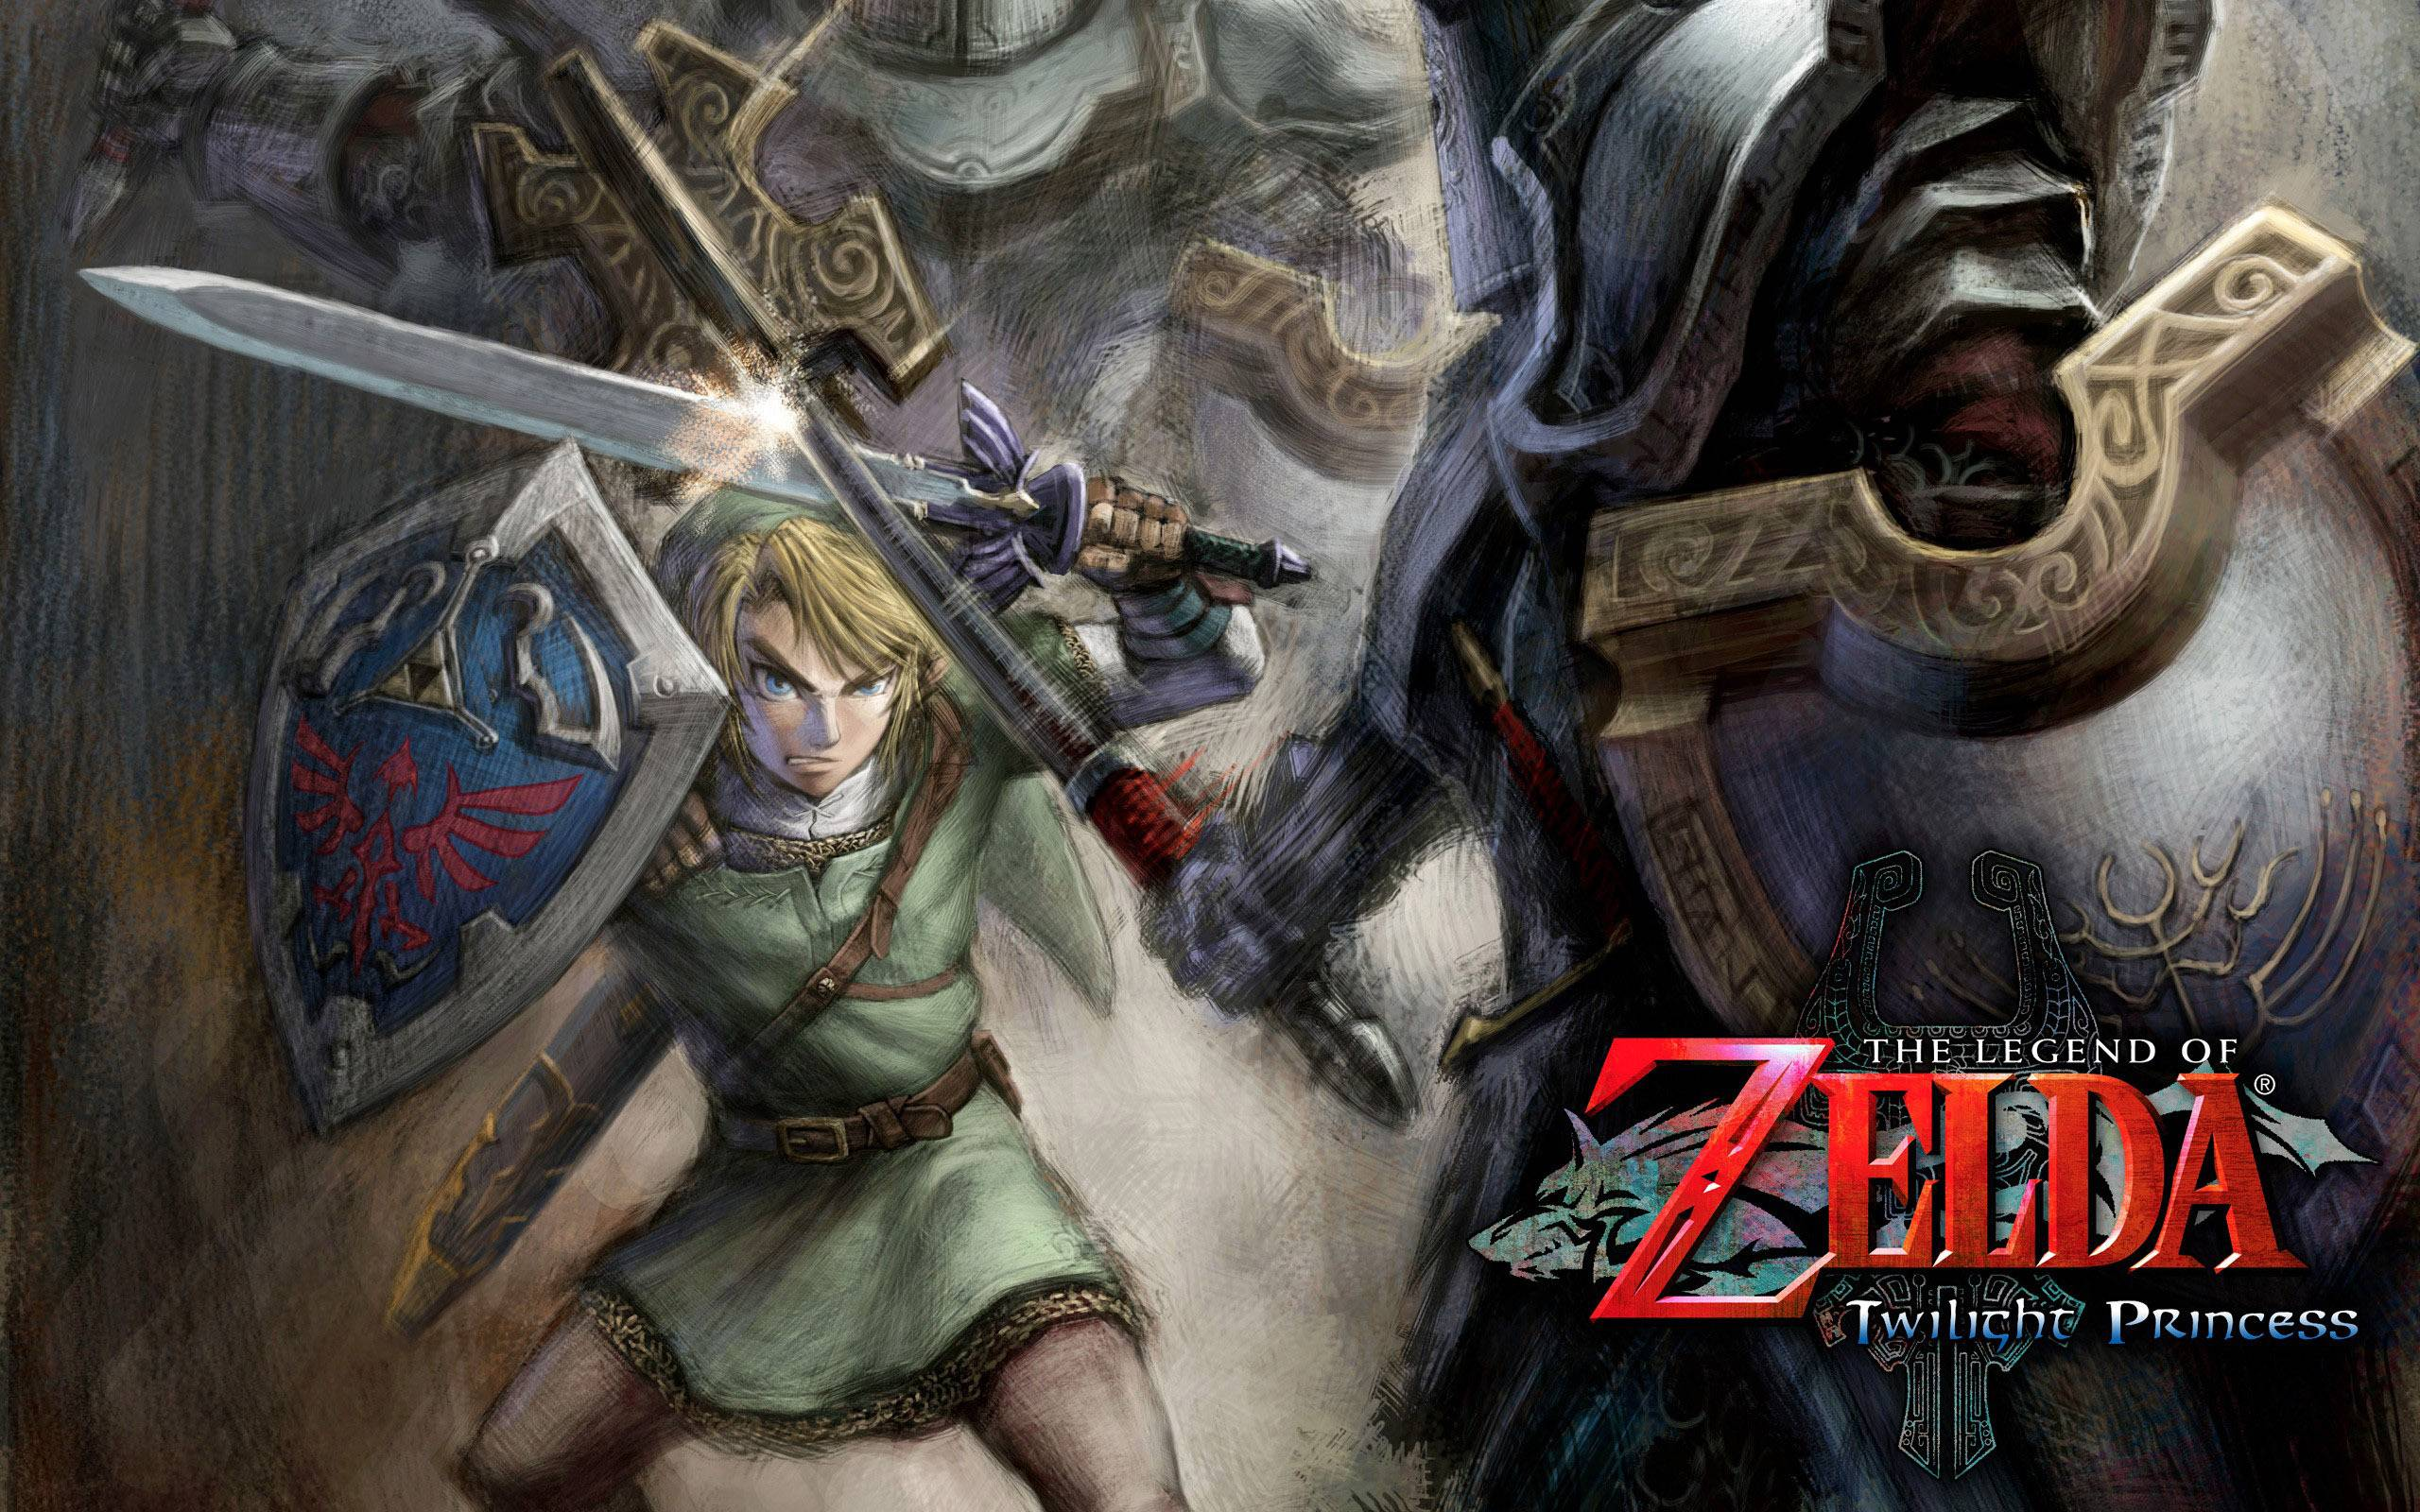 the legend of zelda wallpapers - wallpaper cave